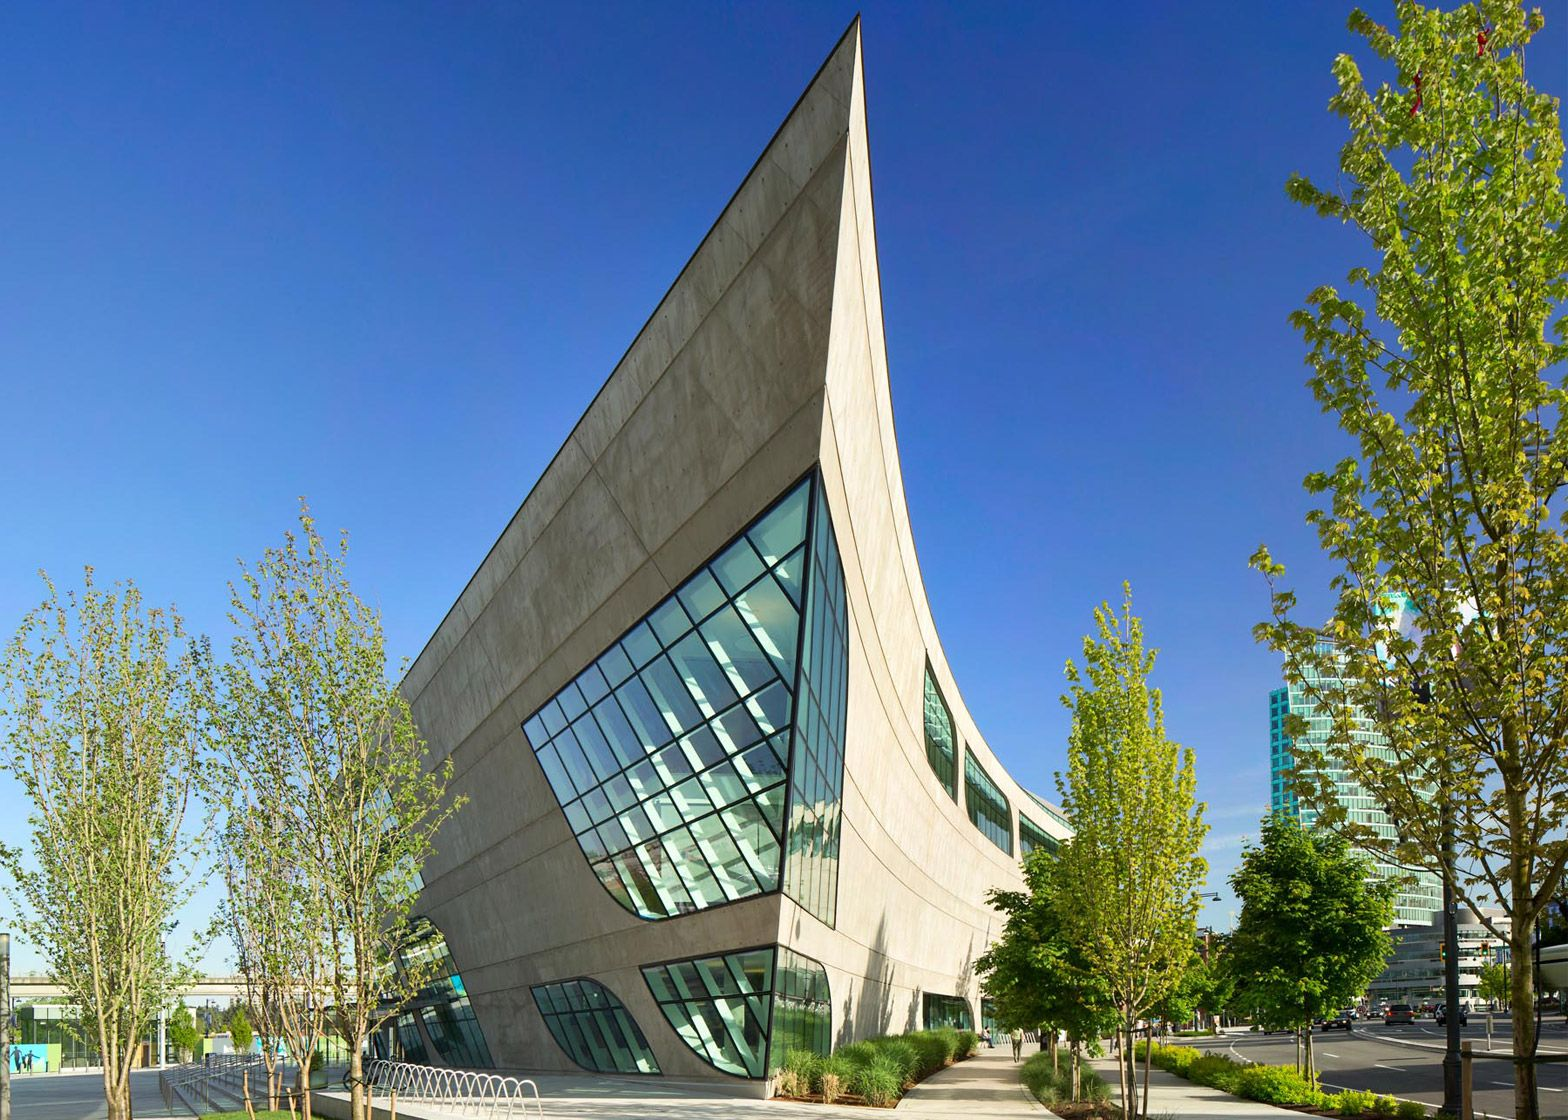 Curved Architecture Bing Thom Builds Curved Concrete Library In British Columbia